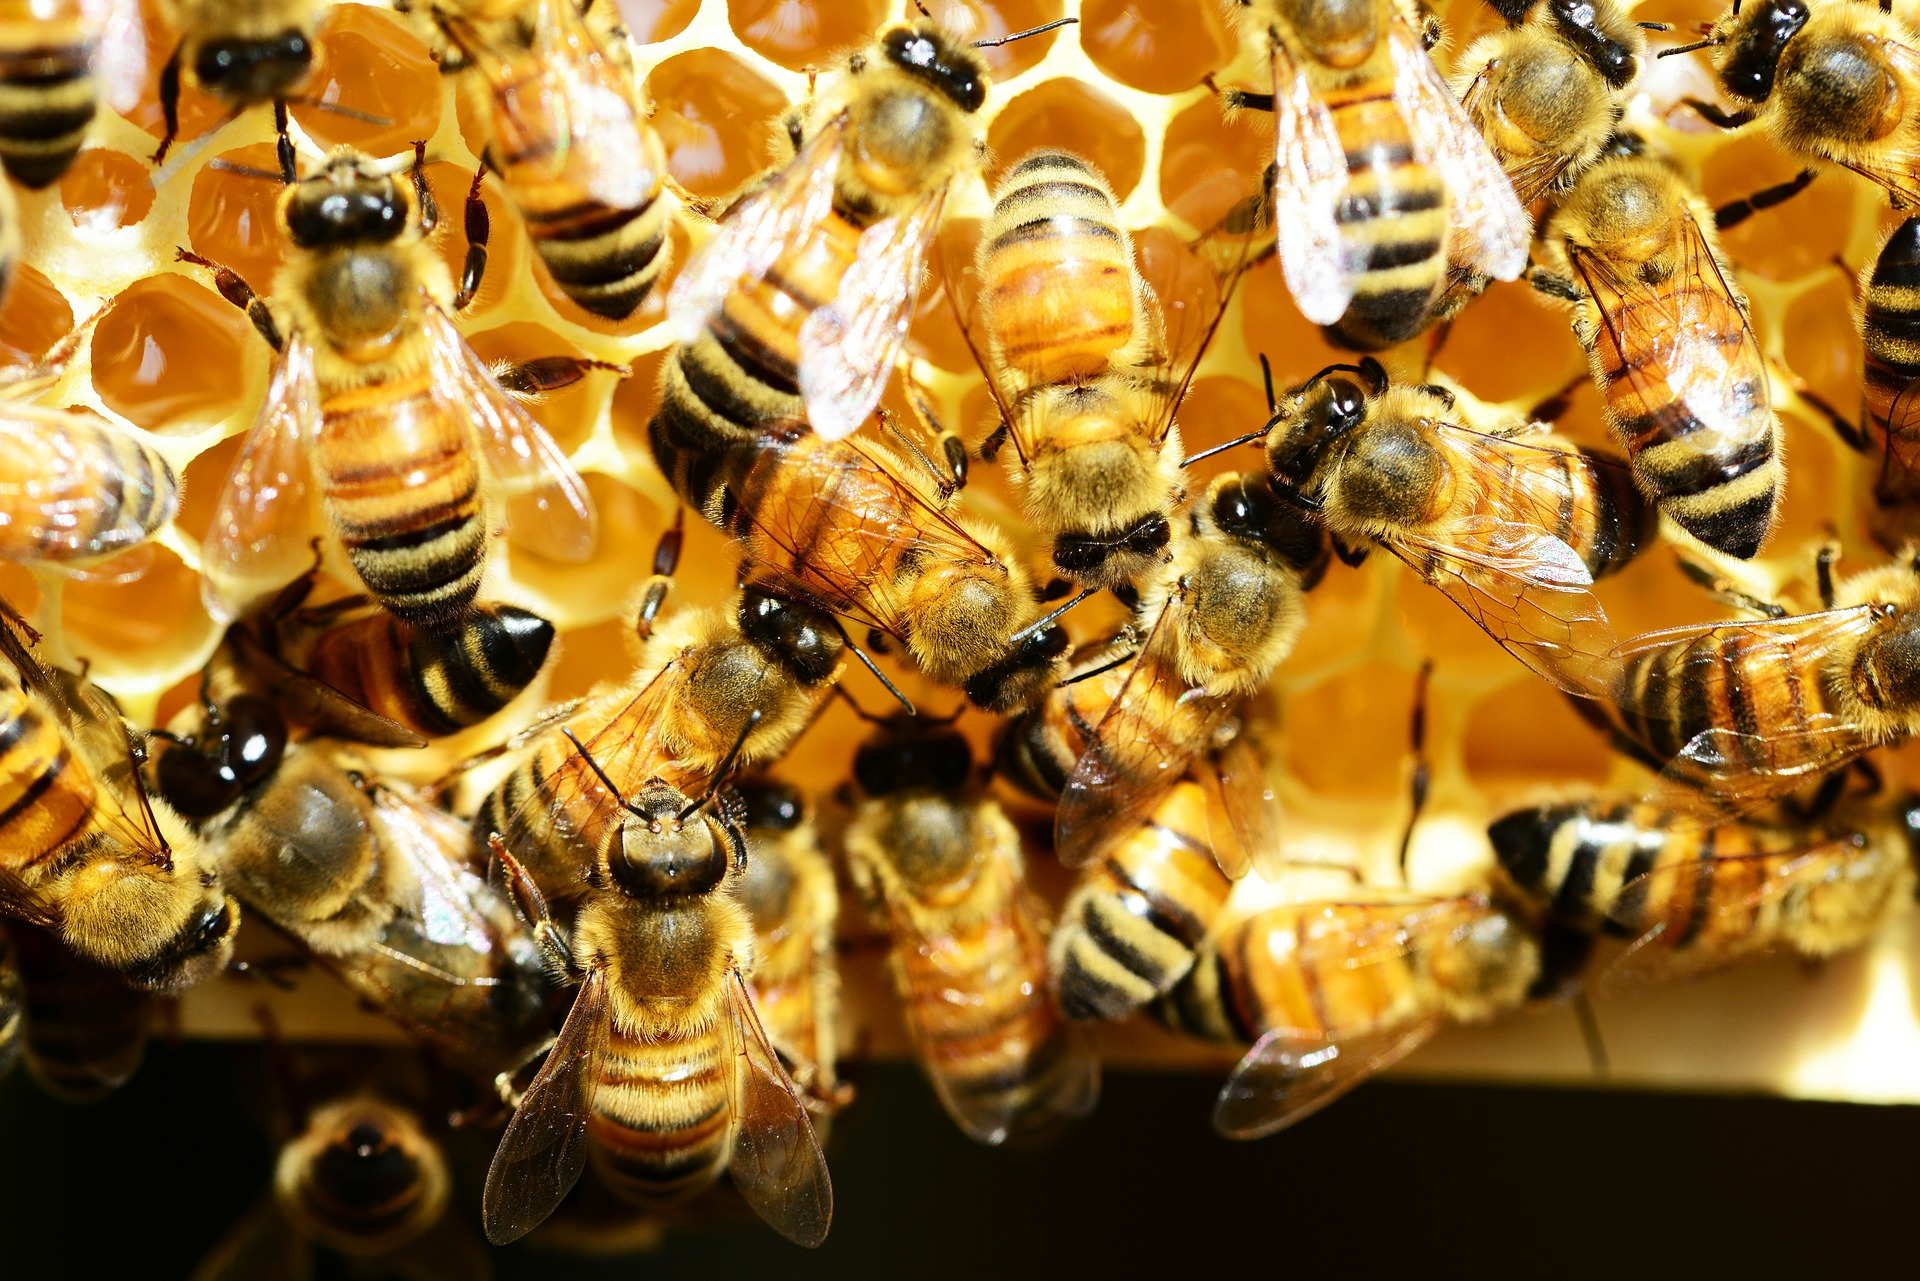 Slander and bad research: how are honeybees really treated?